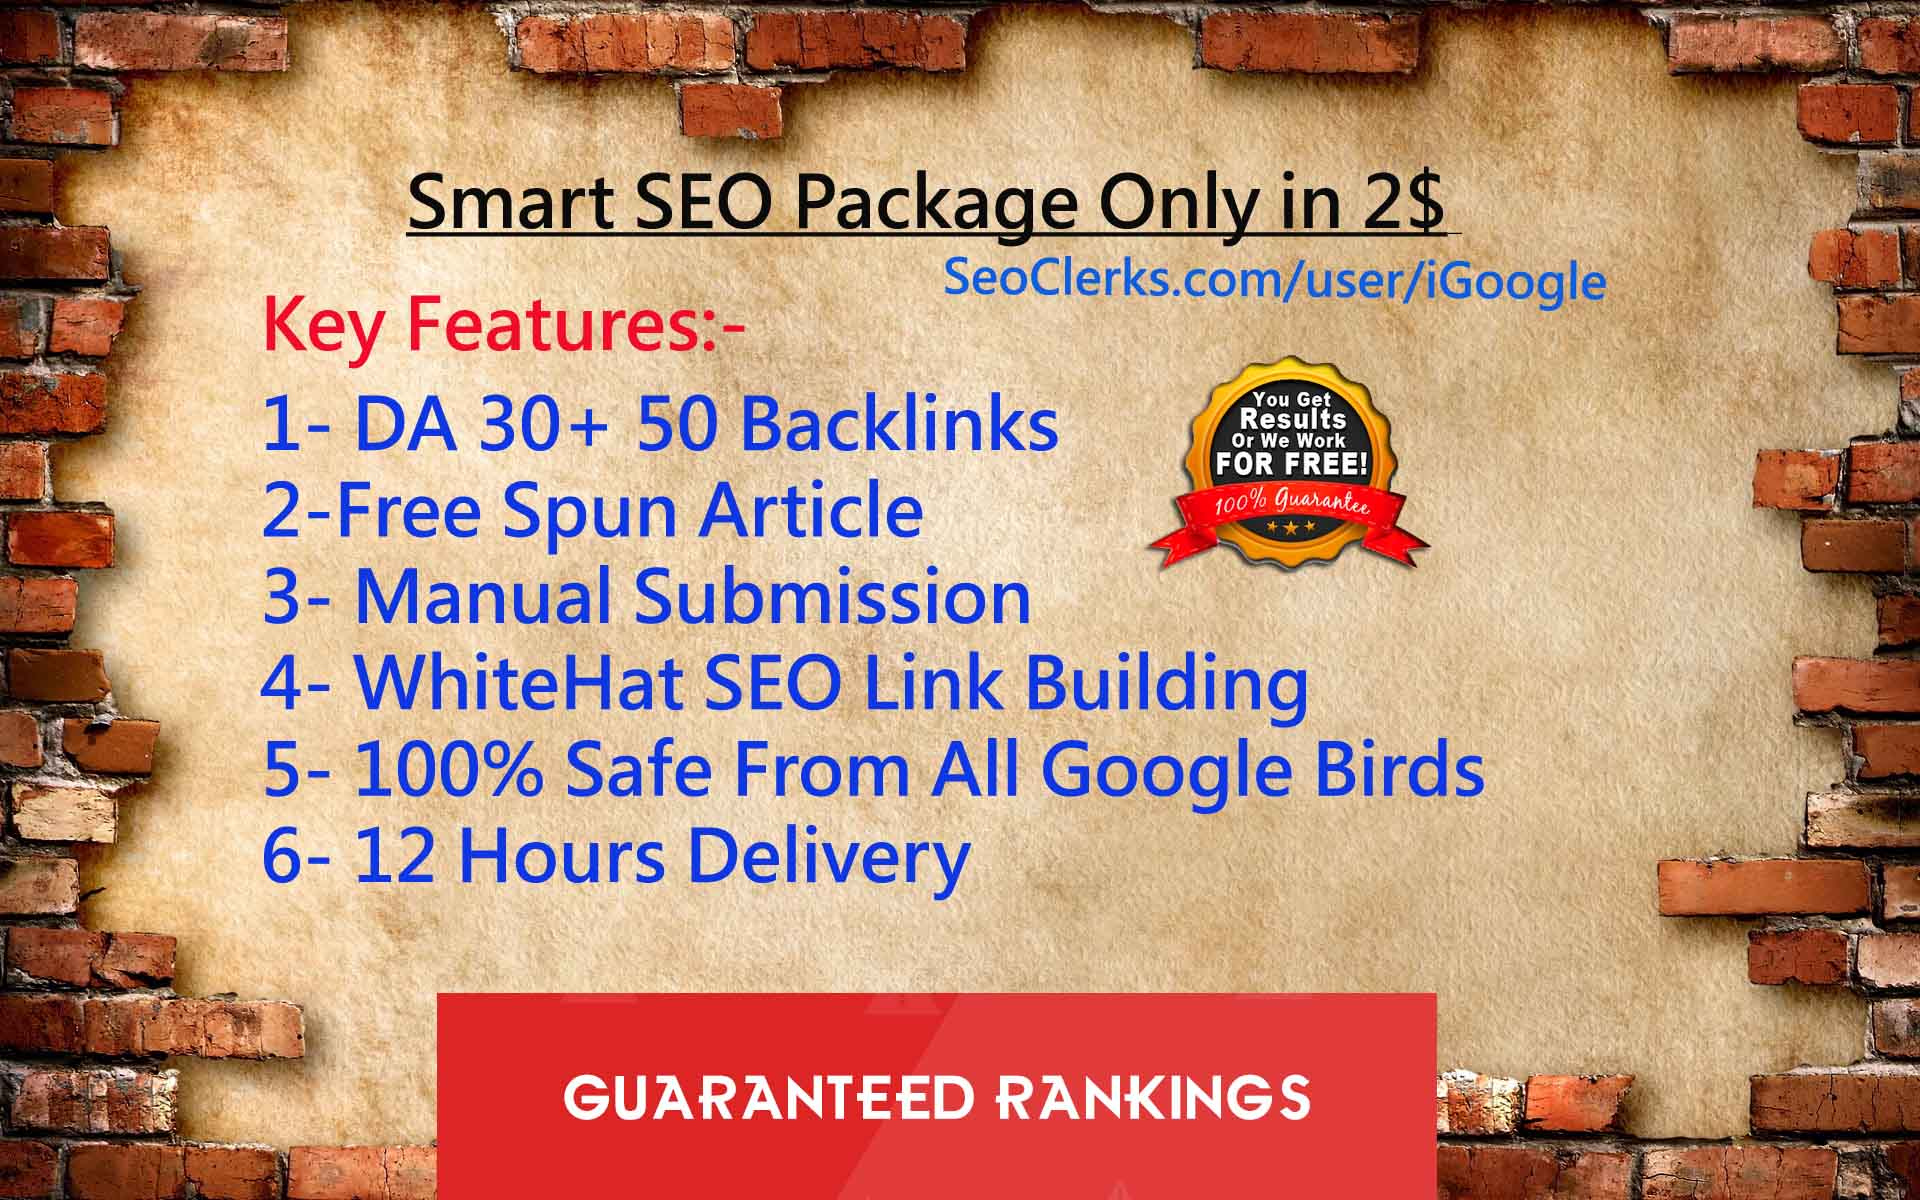 Get 50 DA30+ Backlinks Now - The Smart SEO Package EVER